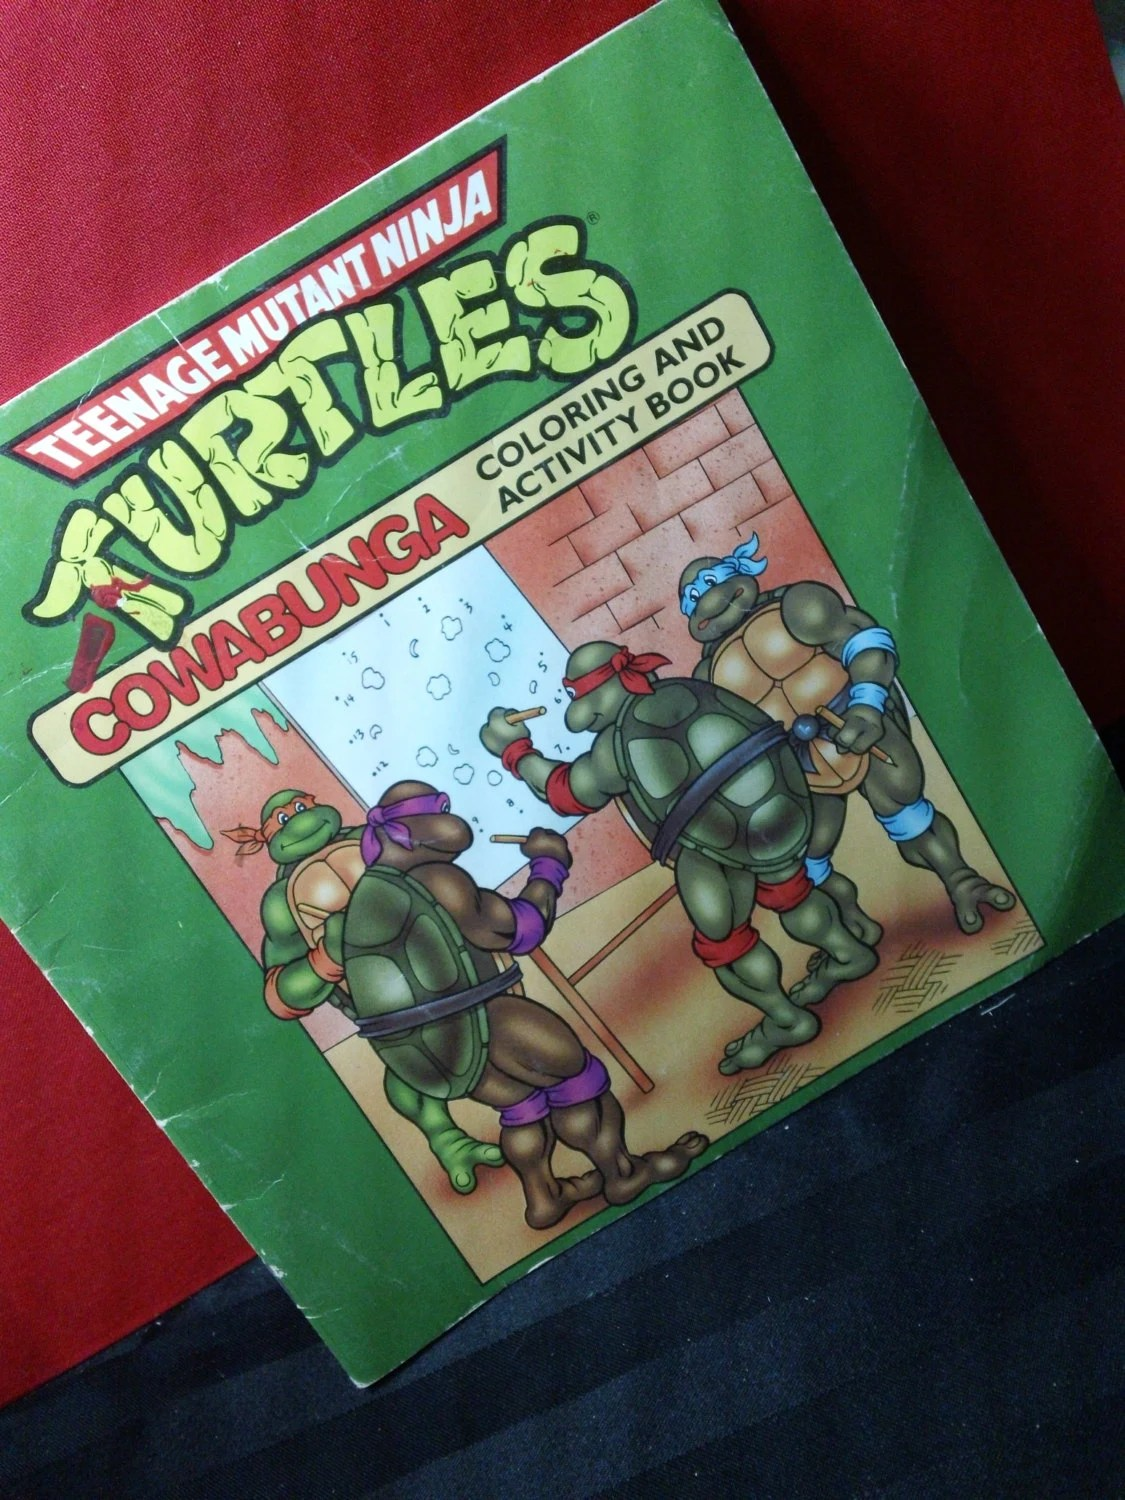 Teenage Mutant Ninja Turtles Cowabunga Coloring And Activity